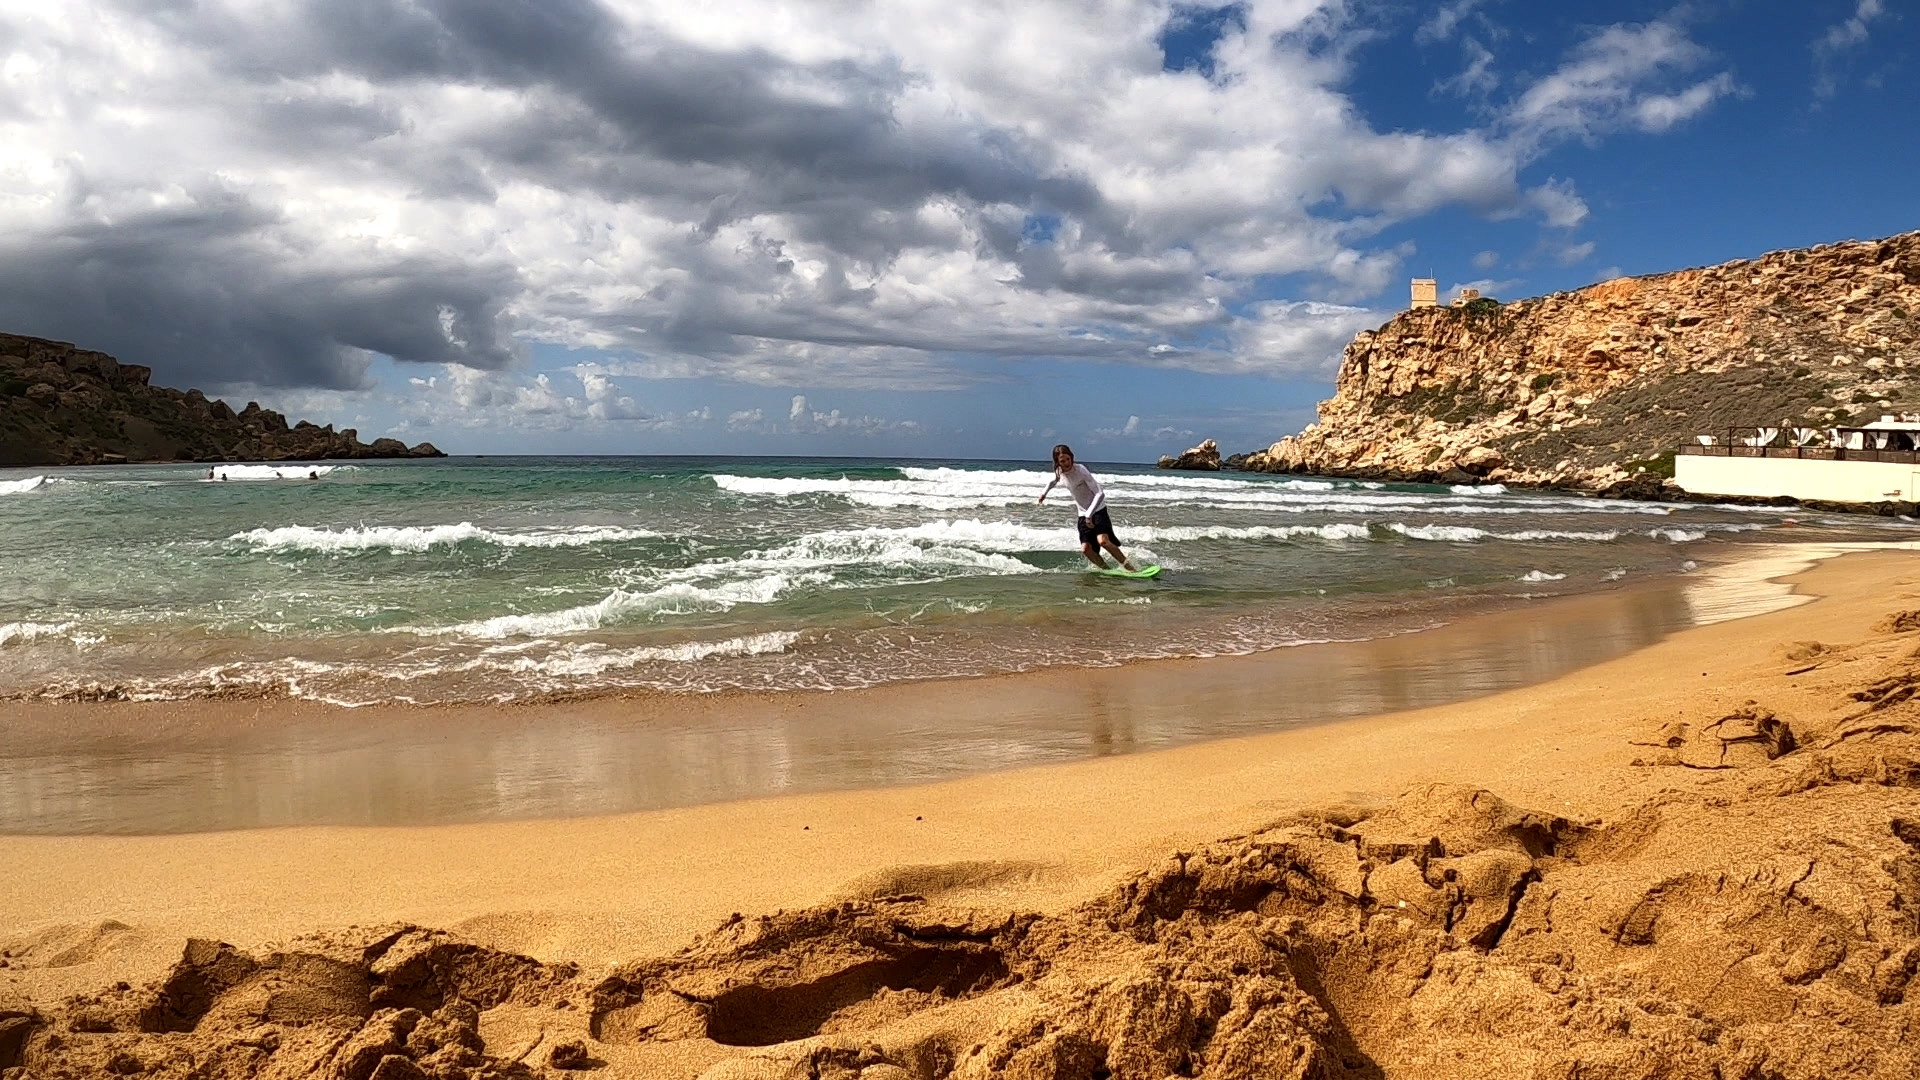 Skimboarding in Malta is always fun.